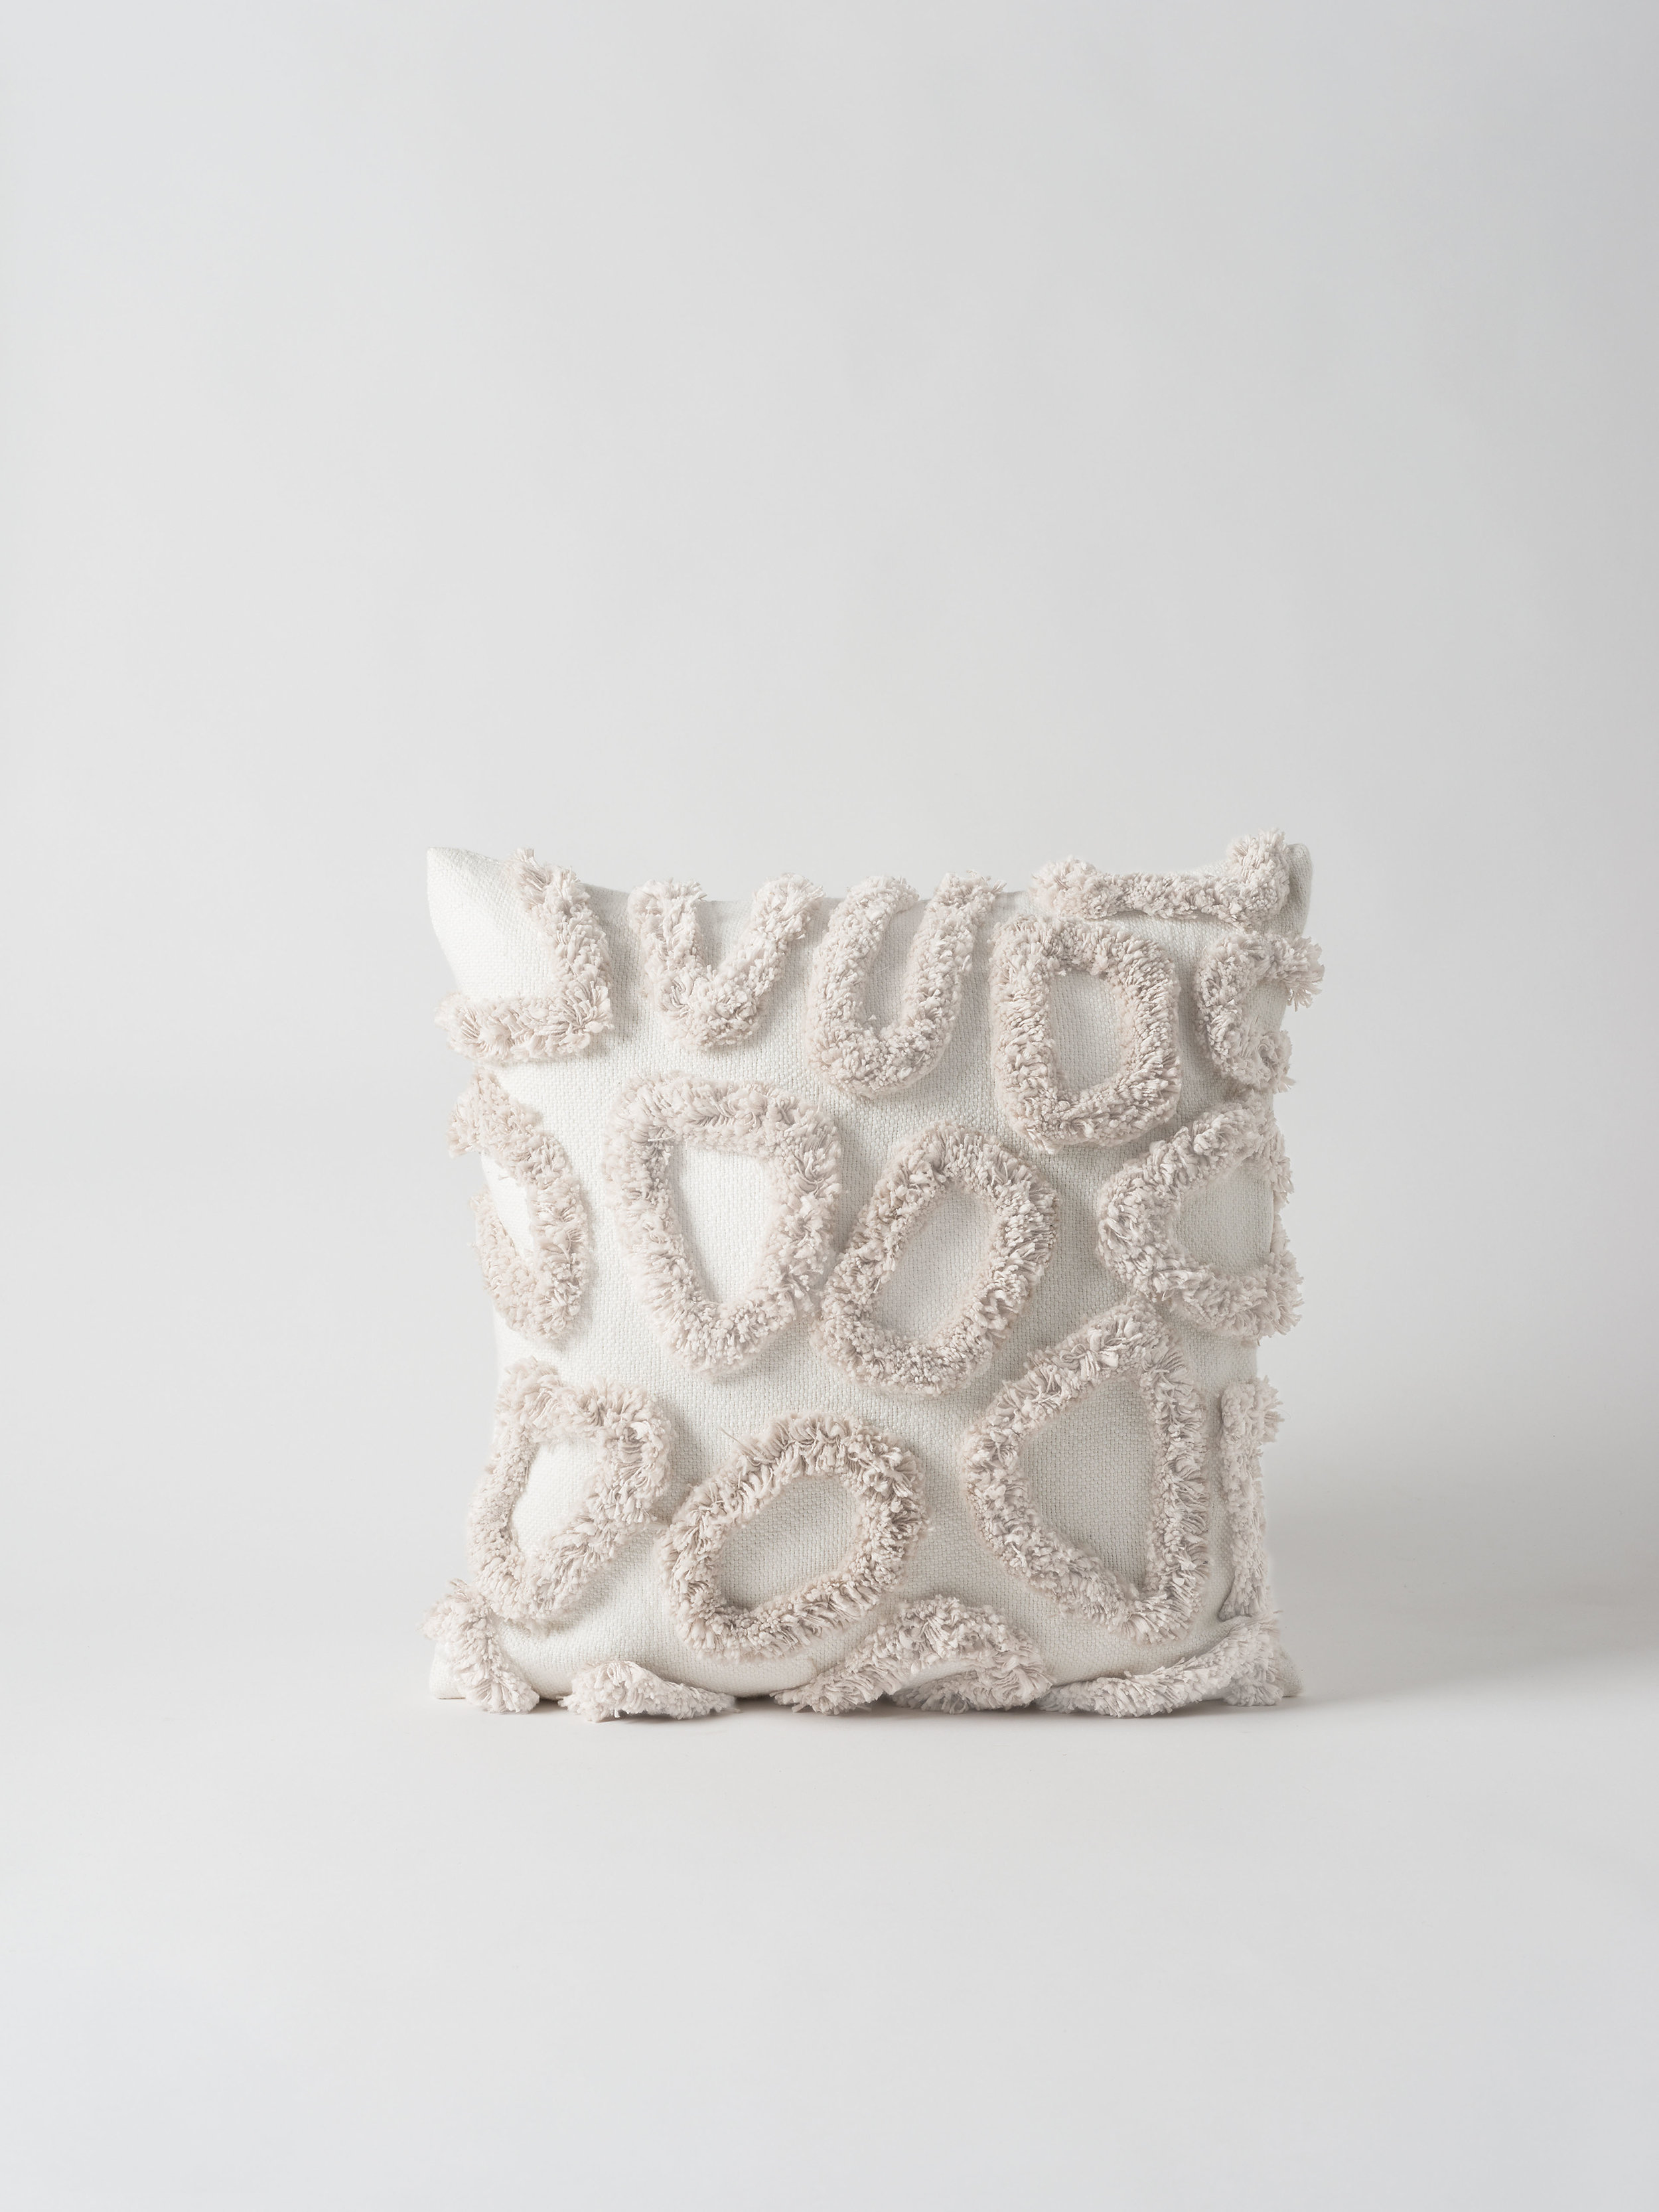 Coral Tufted Cushion Cover $99.90